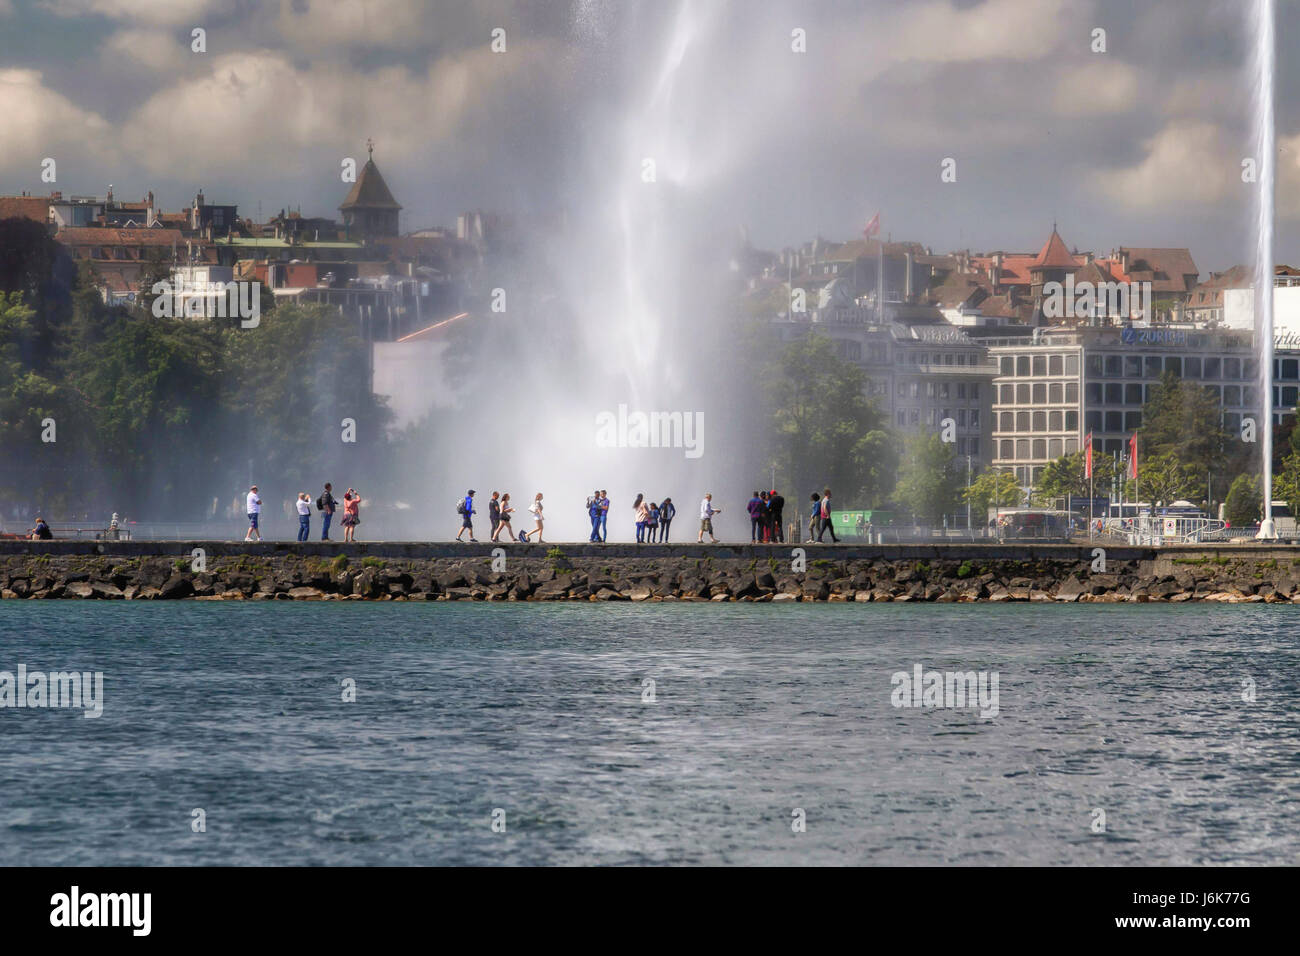 The water jet of Geneva with people in silhouettes on the quay. - Stock Image